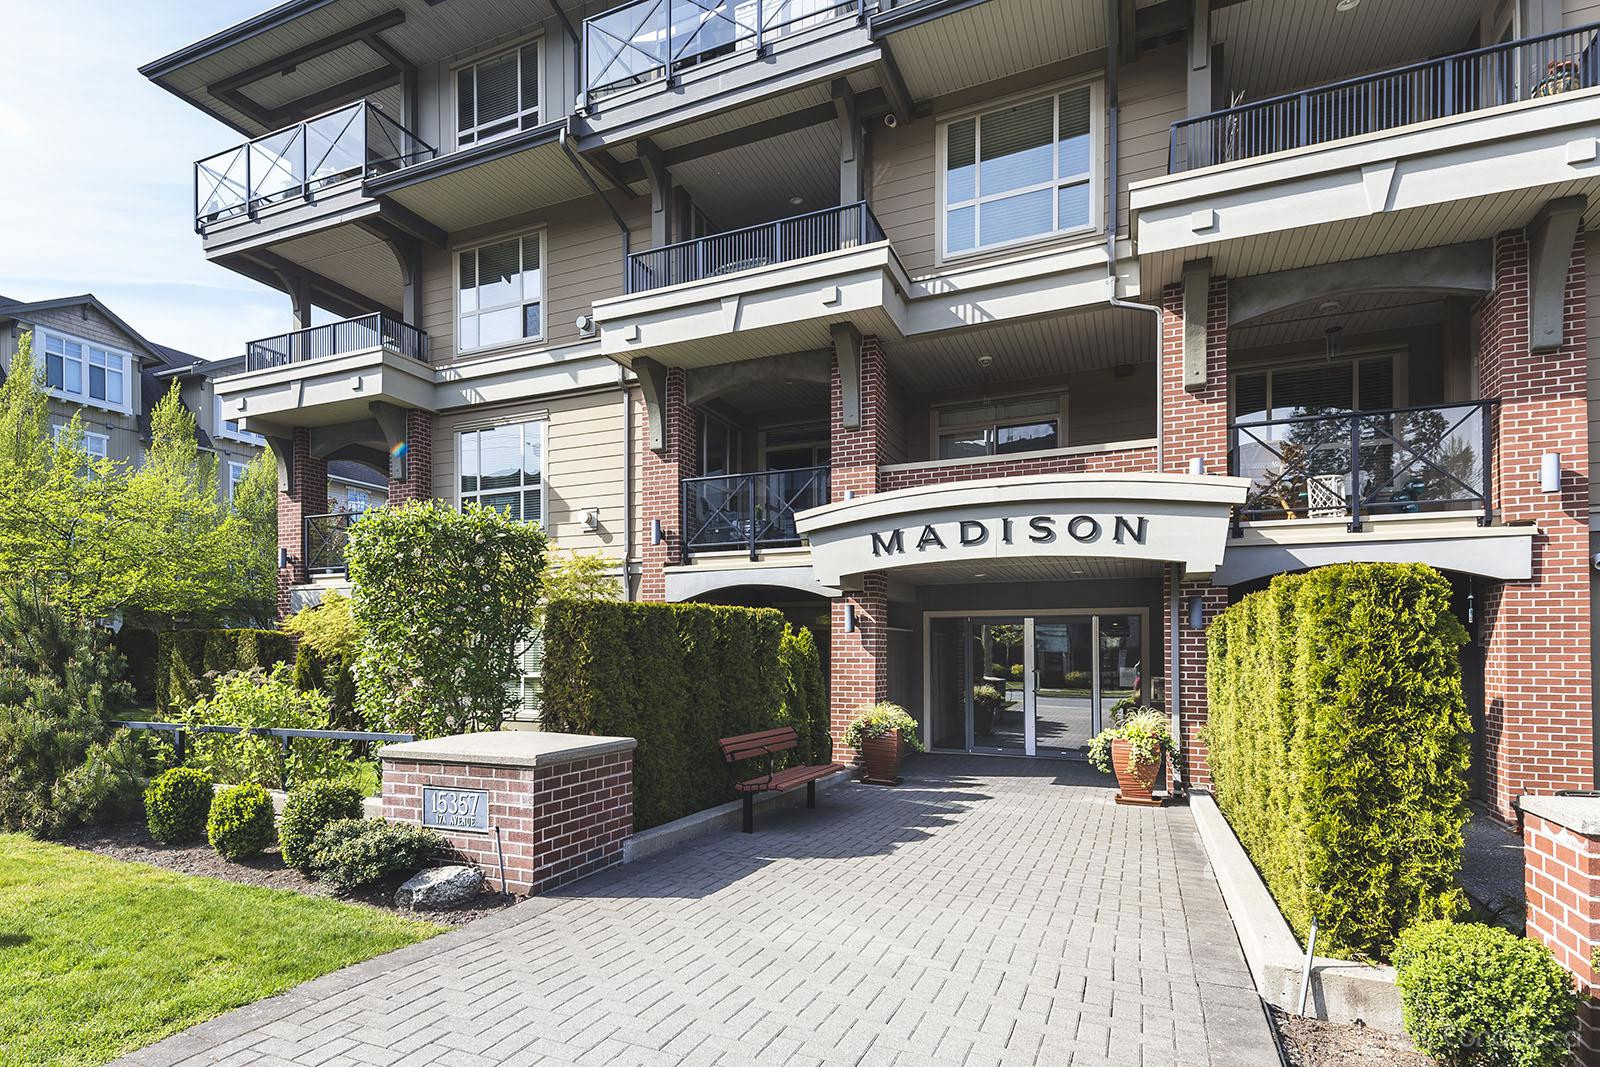 Madison at 15357 17a Ave, Surrey 1